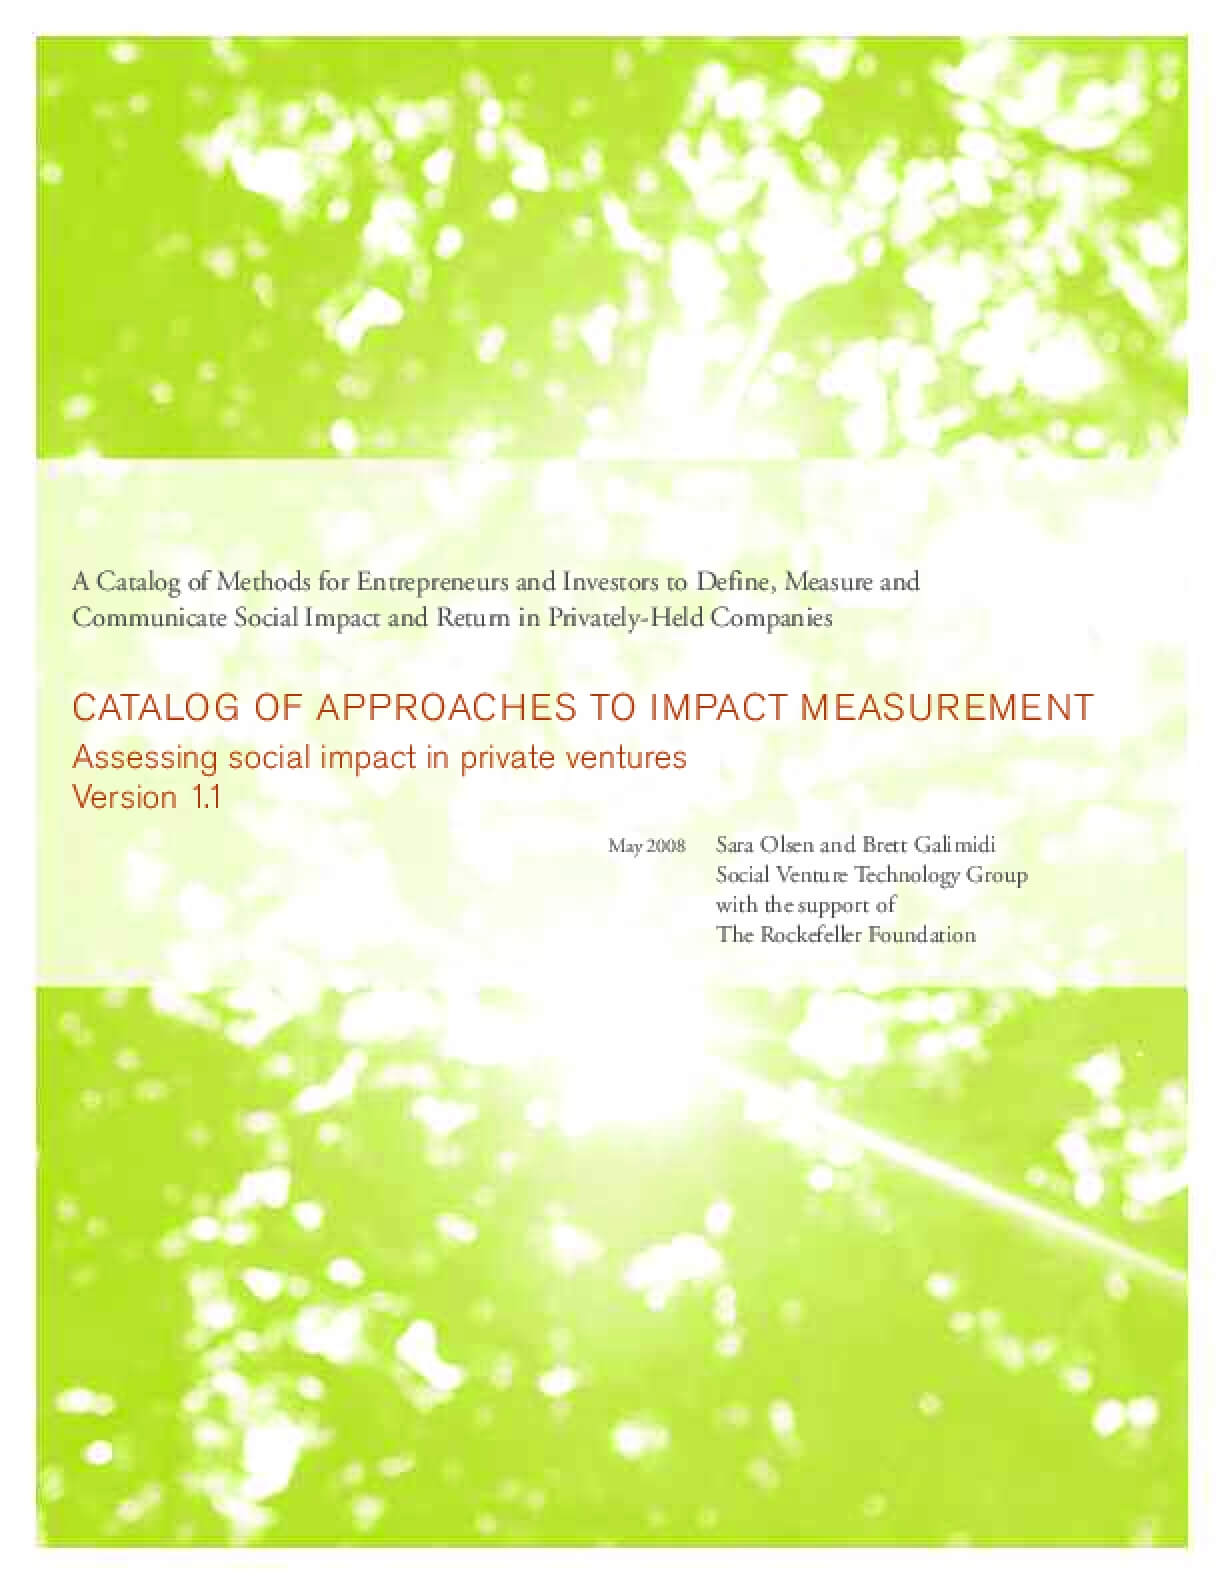 Catalog of Approaches to Impact Measurement: Assessing Social Impact in Private Ventures